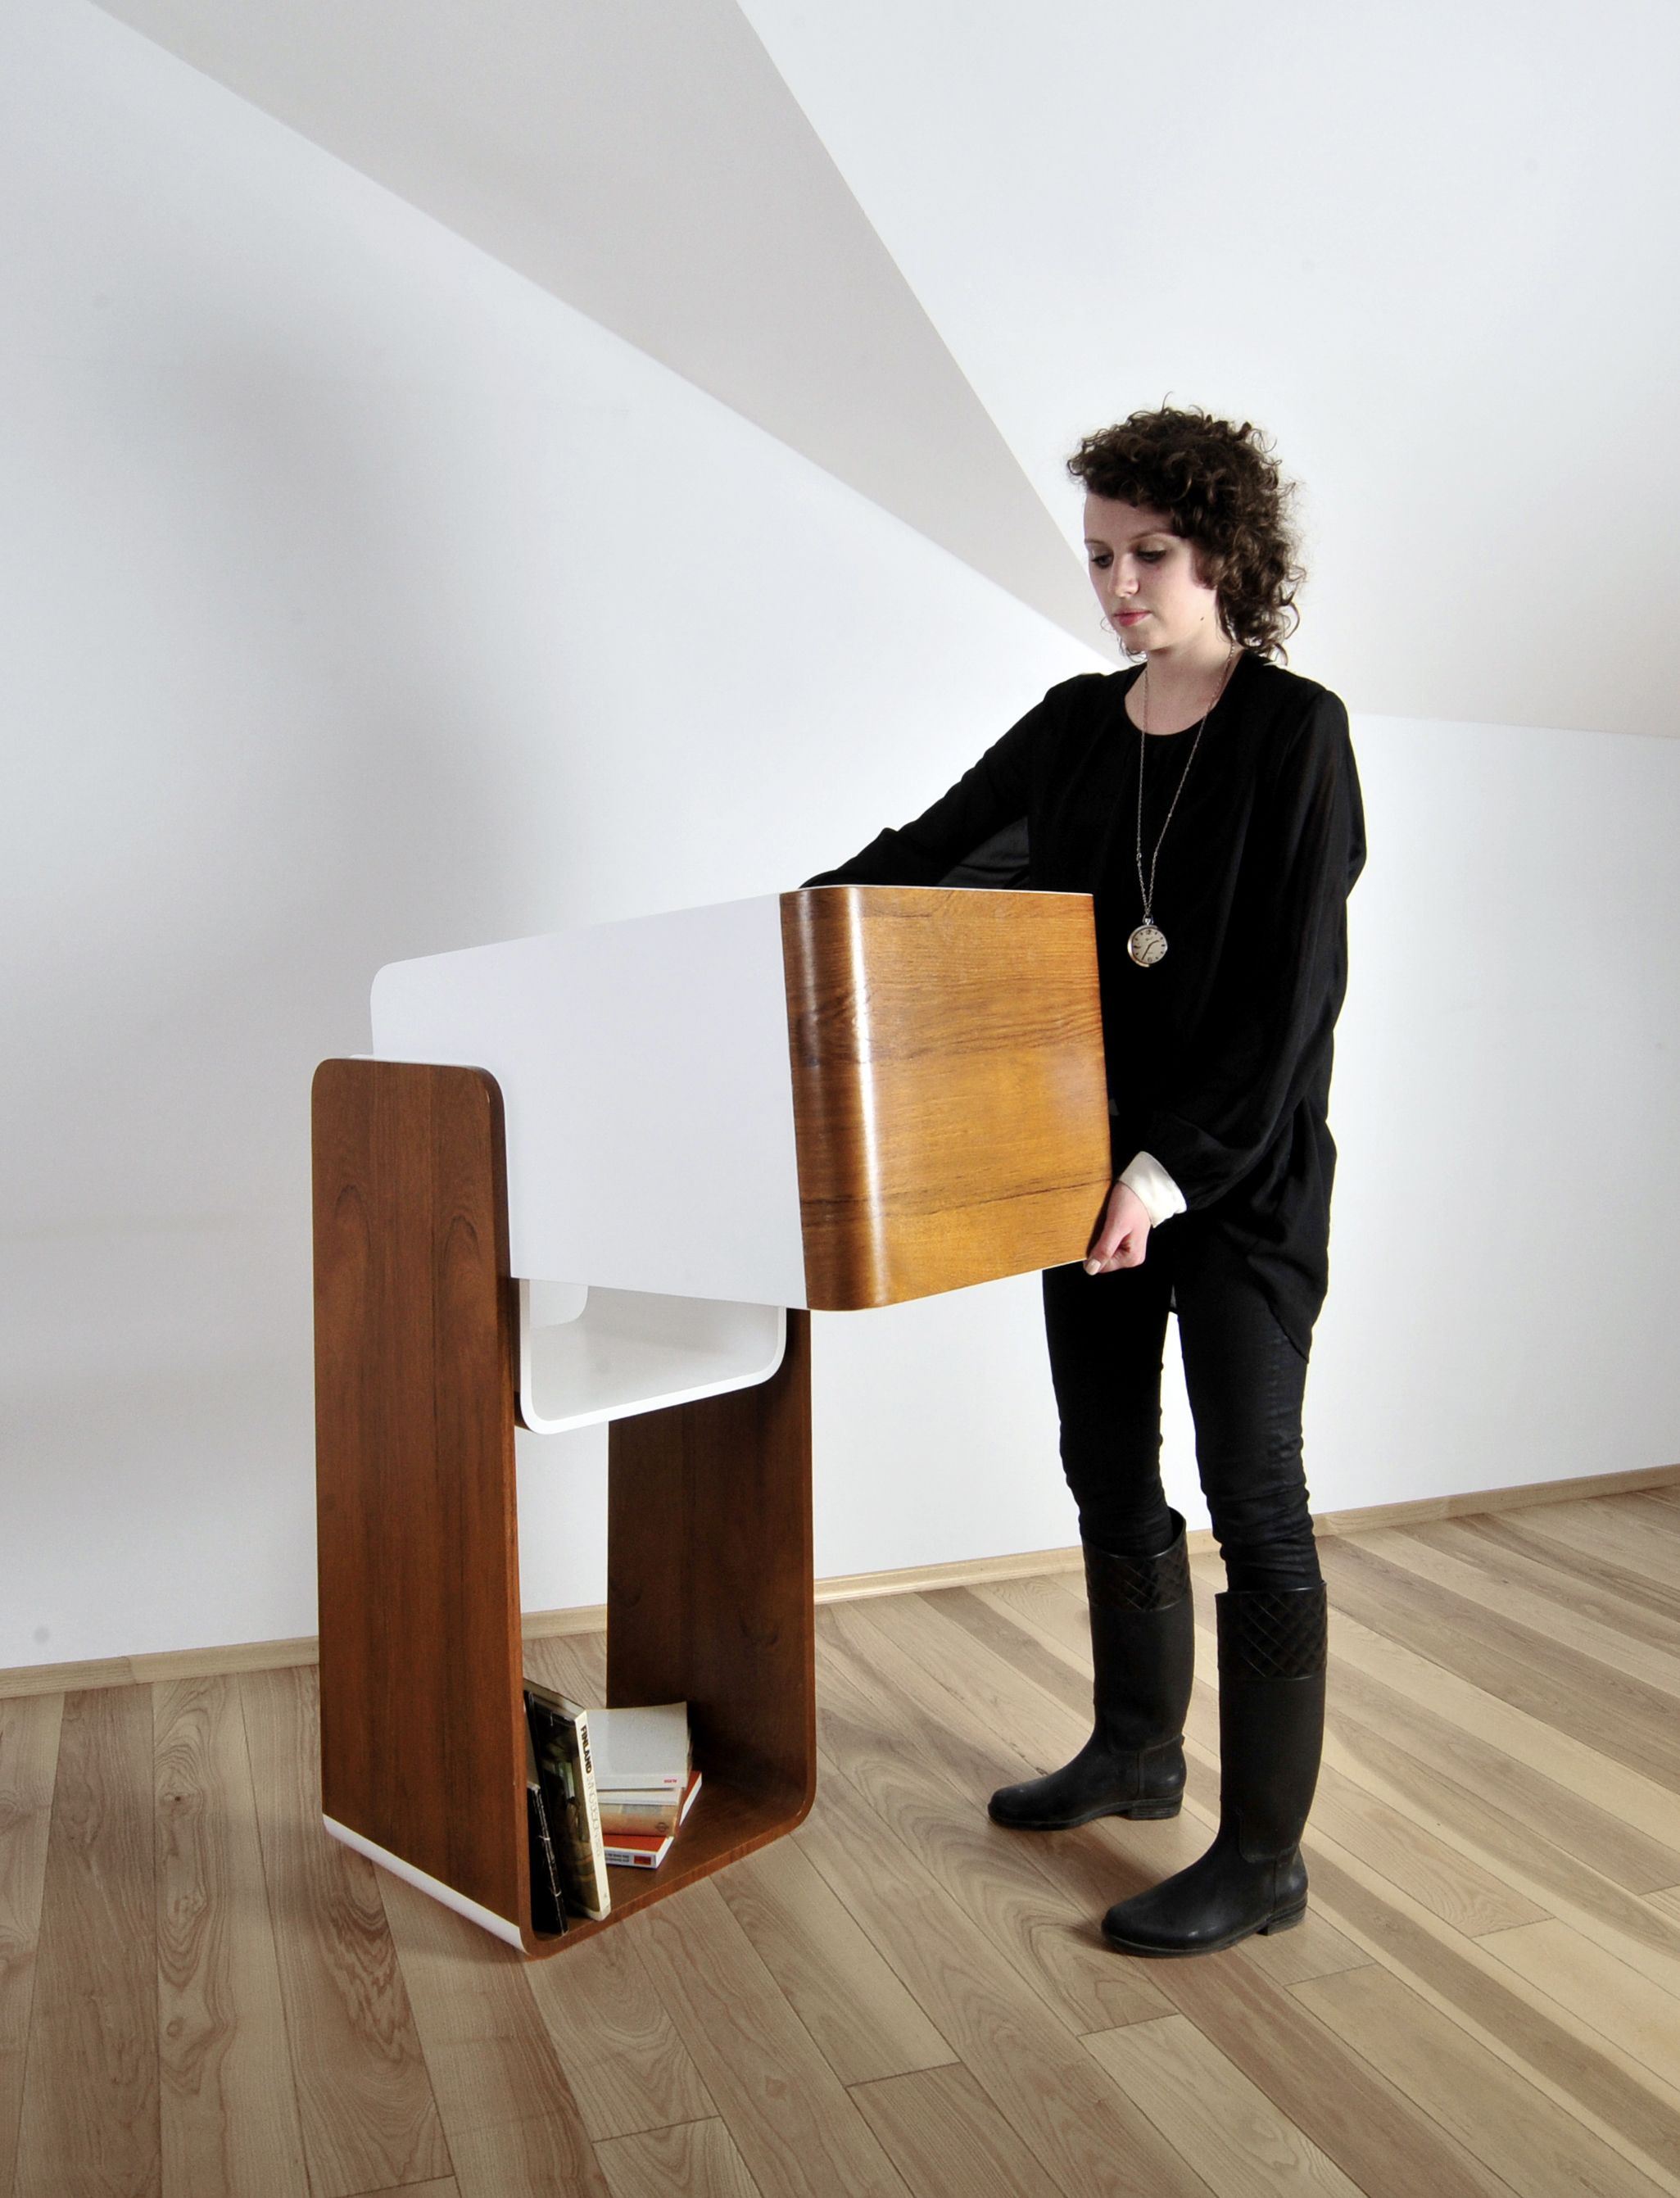 Aino by Anna Sanetra 2 in 1 bookstand and coffee table